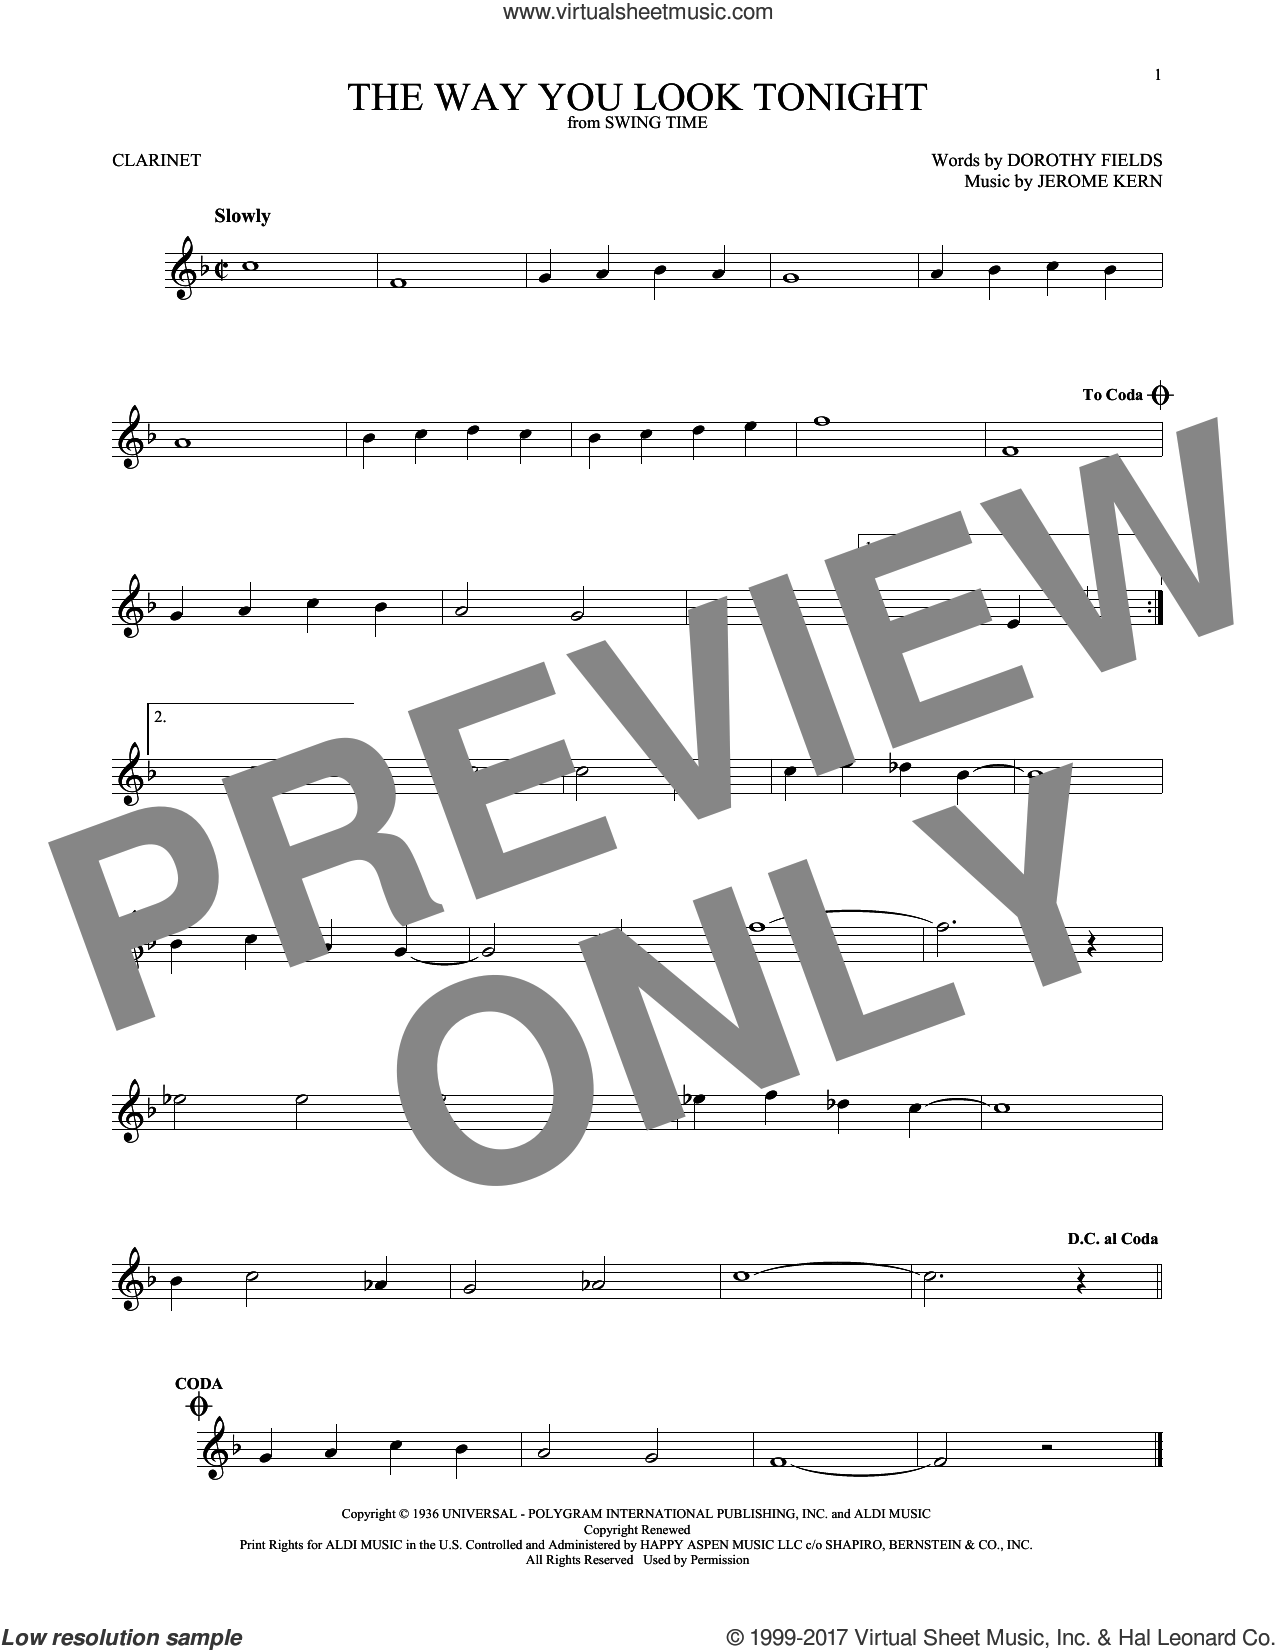 The Way You Look Tonight sheet music for clarinet solo by Jerome Kern and Dorothy Fields, intermediate skill level